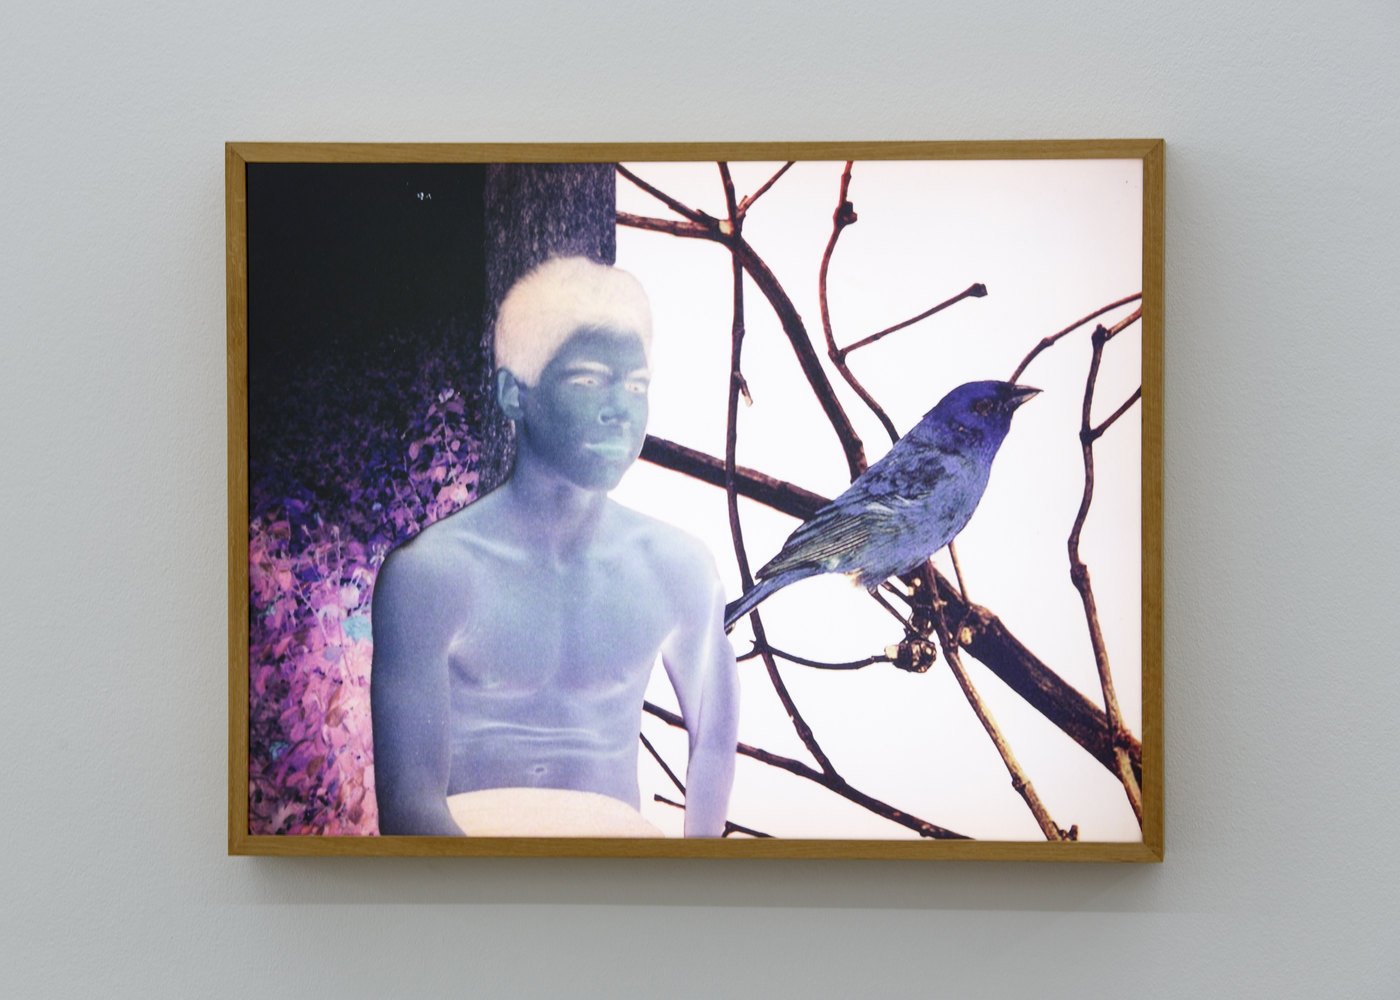 15. Ronit Porat, The boy with the blue bird, 2015